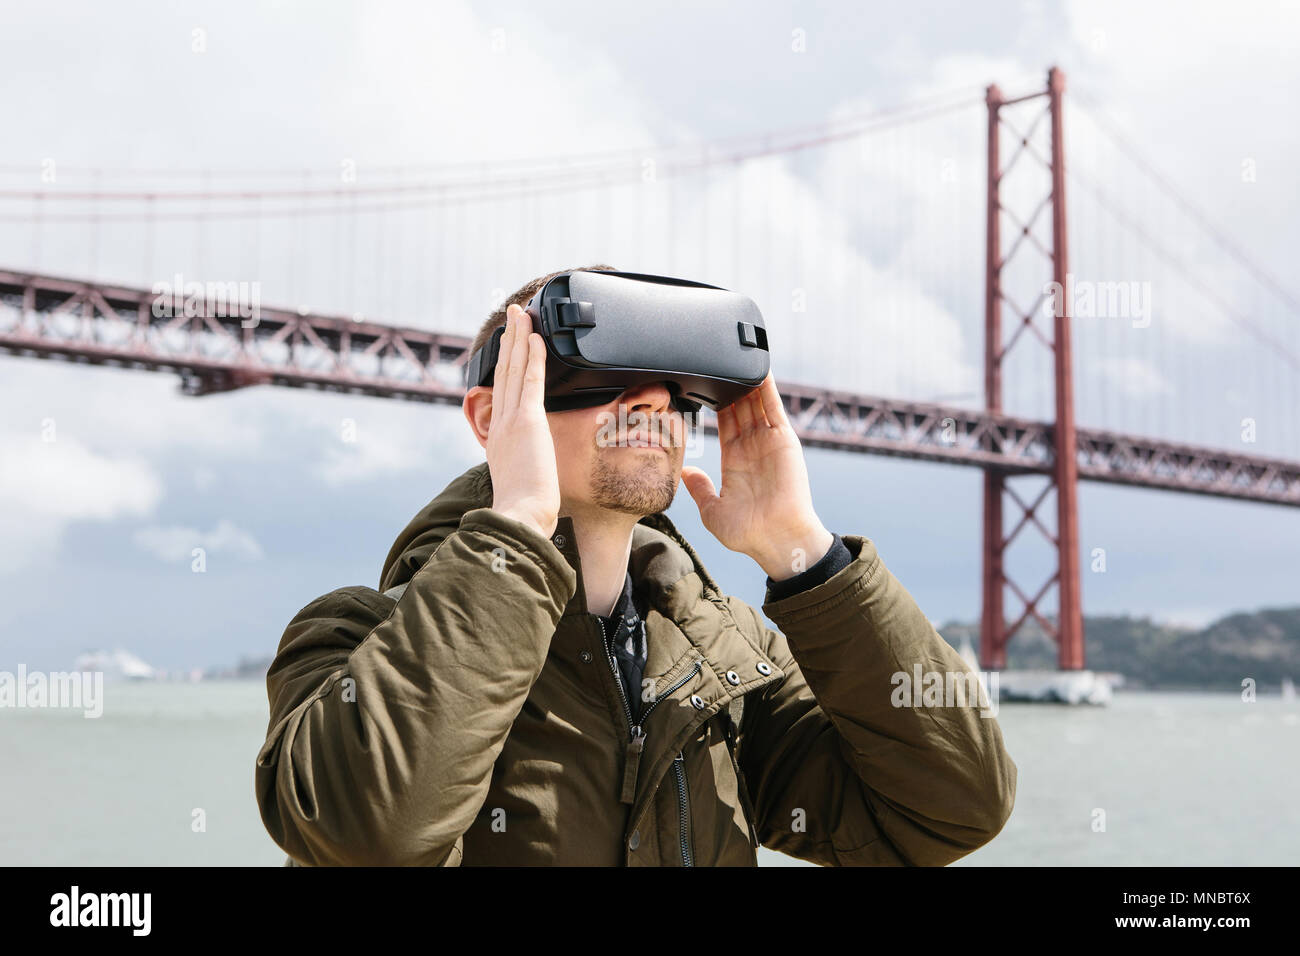 A man uses virtual reality glasses. 25th of April bridge in Lisbon in the background. The concept of virtual travel. The concept of modern technologies and their use in everyday life - Stock Image